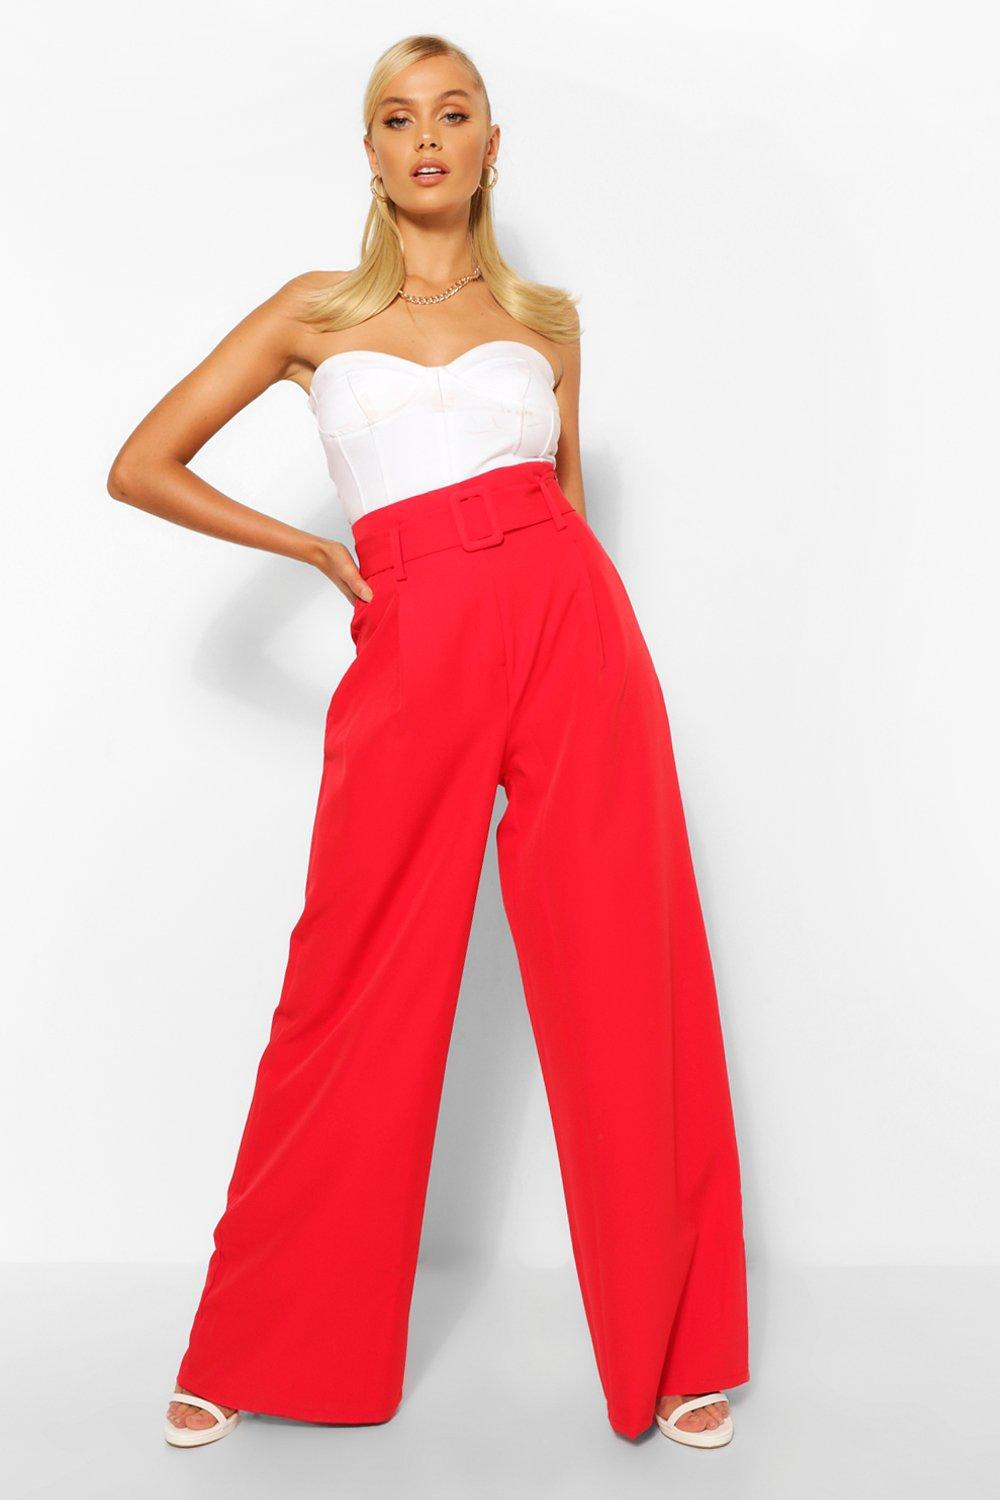 1930s Wide Leg Pants and Beach Pajamas Womens Super Wide Leg Belted Pants - Red - 10 $24.00 AT vintagedancer.com